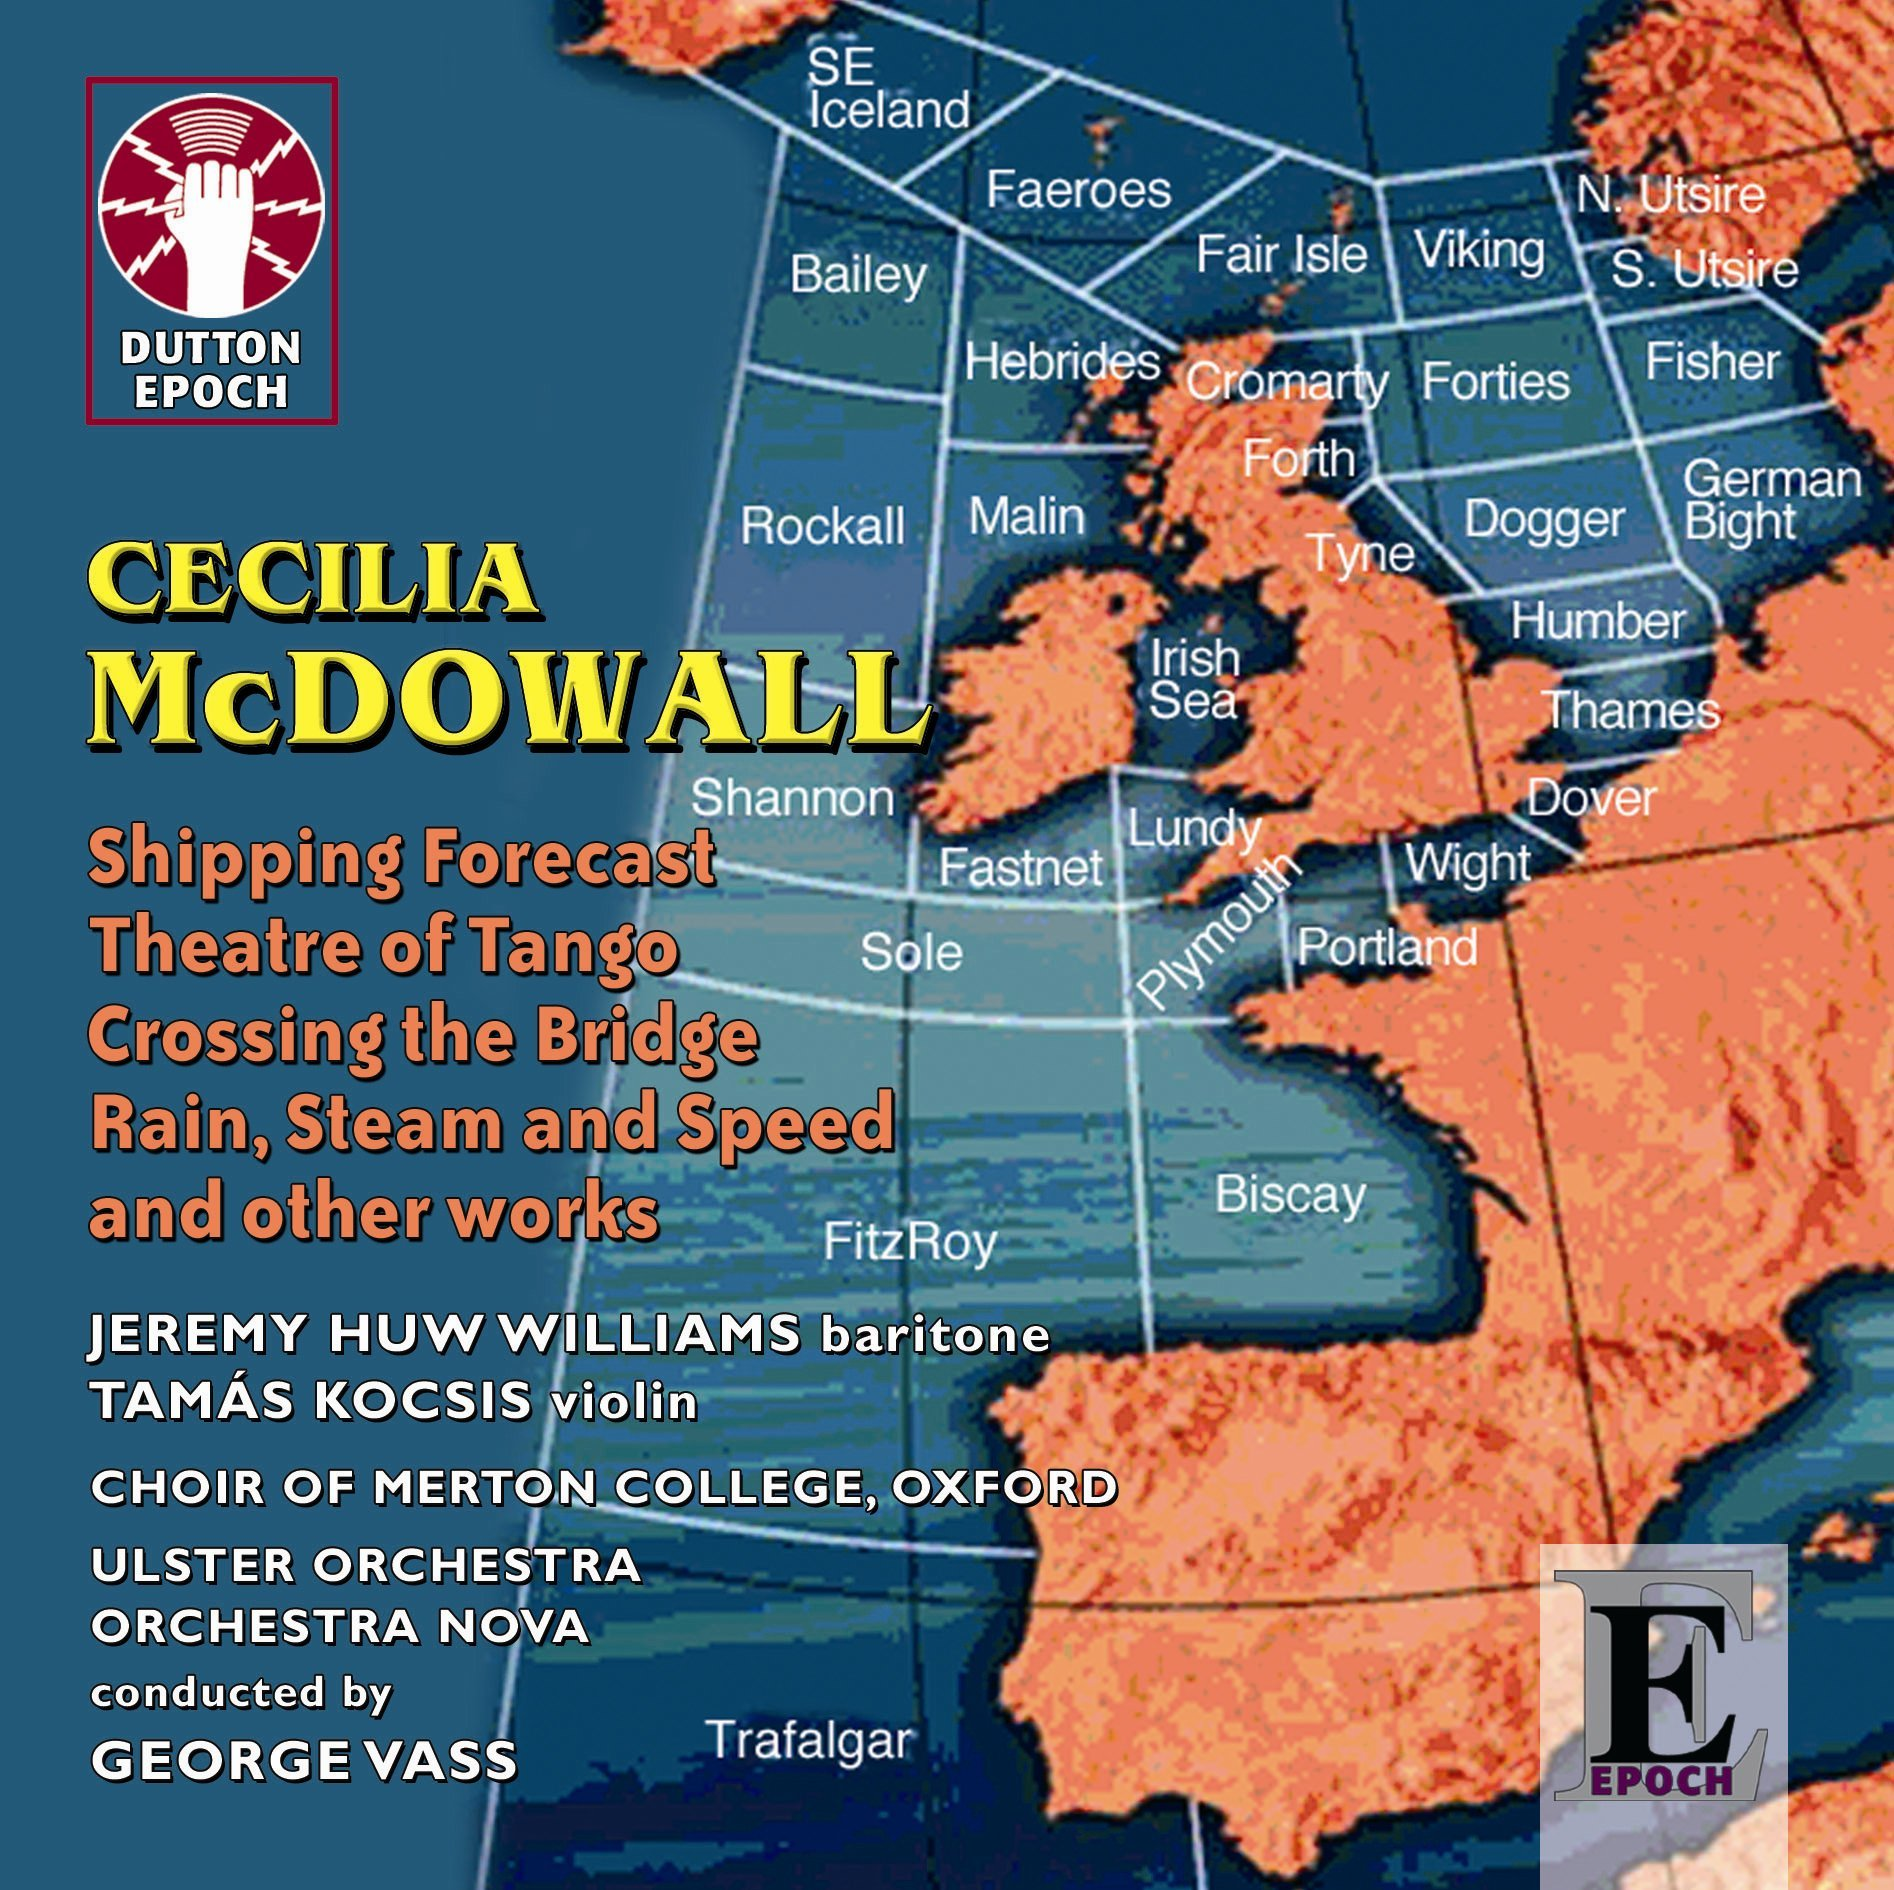 Cecilia McDowall - Shipping Forecast; Theatre of Tango; Crossing the Bridge; Rain, Steam and Speed etc by Dutton Epoch